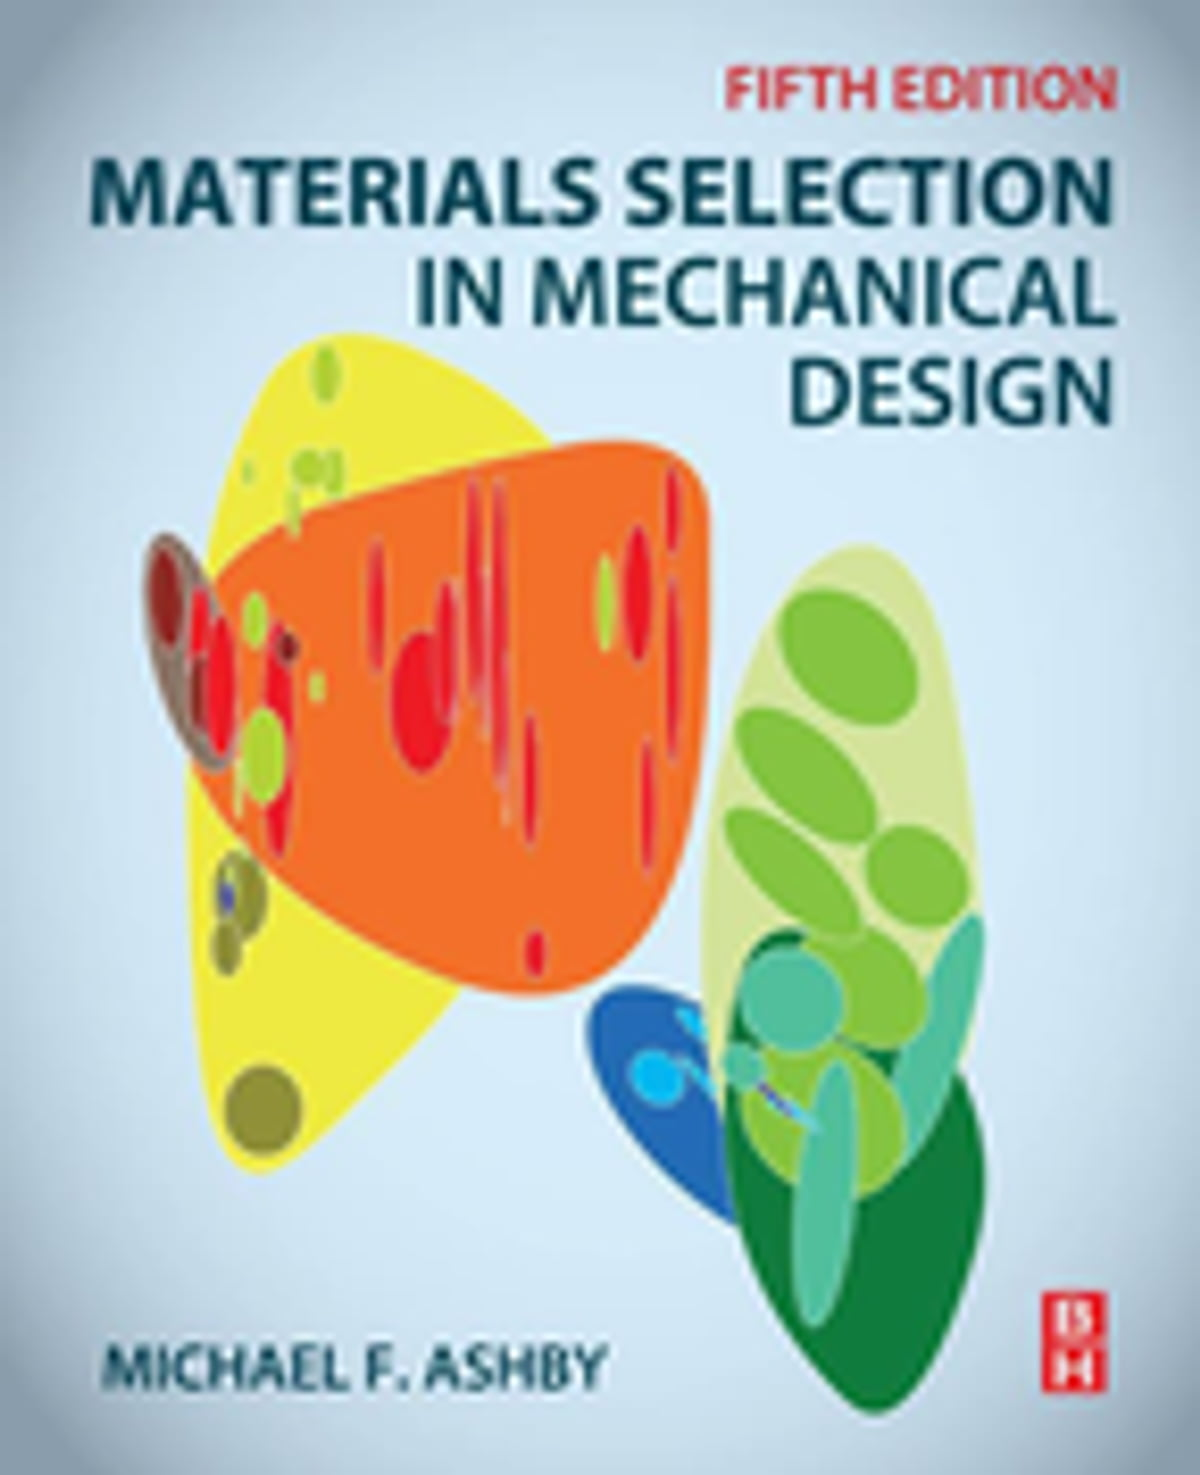 Materials Selection In Mechanical Design Ebook By Michael F Ashby 9780081006108 Rakuten Kobo United States